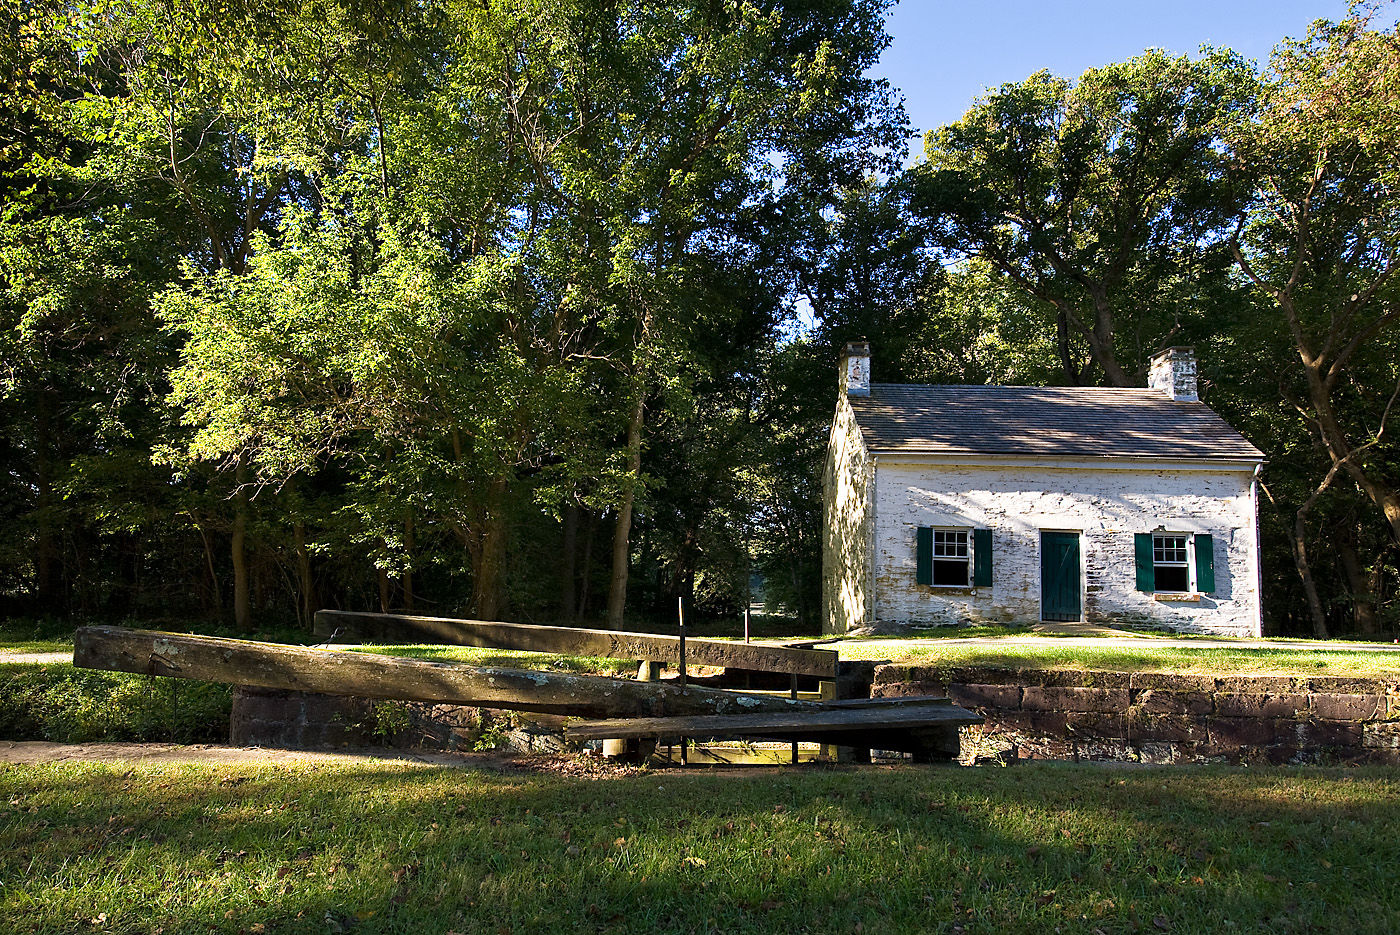 Six historic lockhouses along the C&O Canal have been restored by the C&O Canal Trust and are available for overnight guests. This picture shows lockhouse 22 in Potomac, Maryland.(Courtesy C&O Canal Trust)